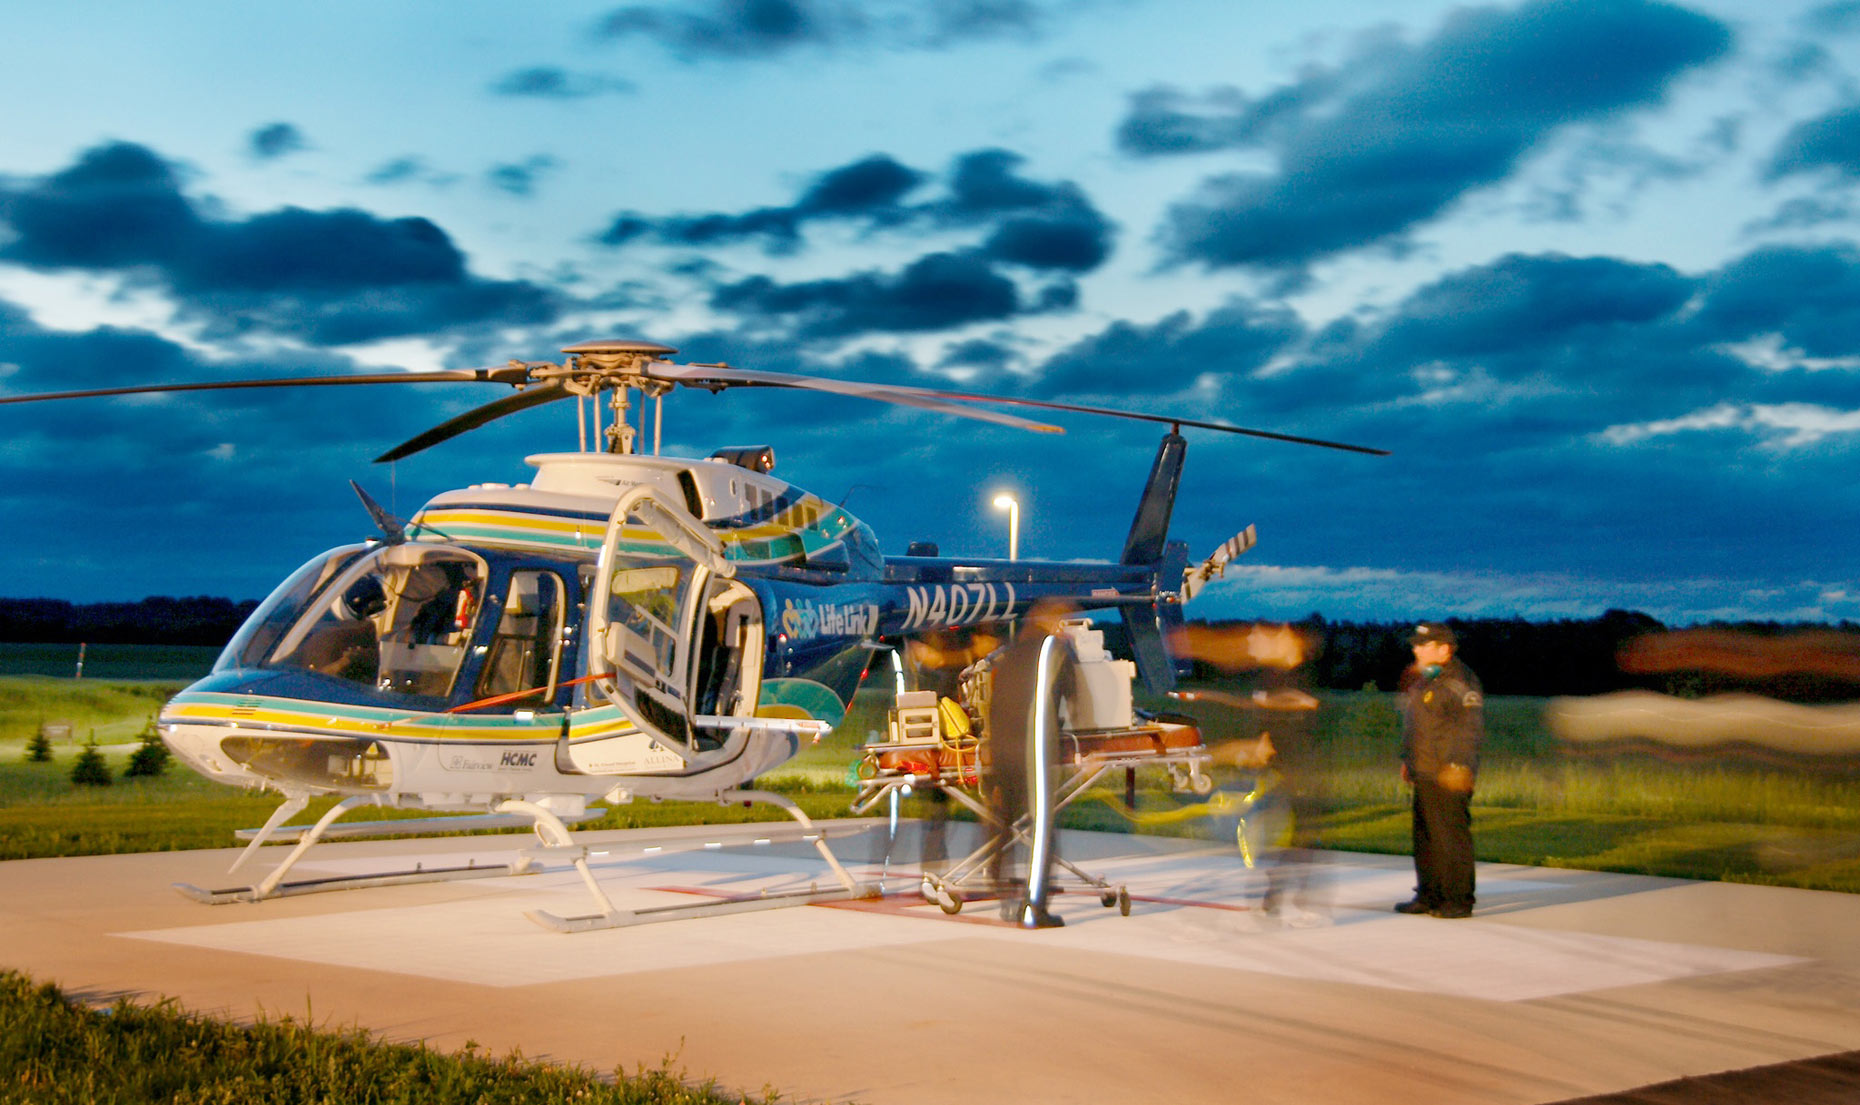 LifeLink helicopter/landing pad/location photography